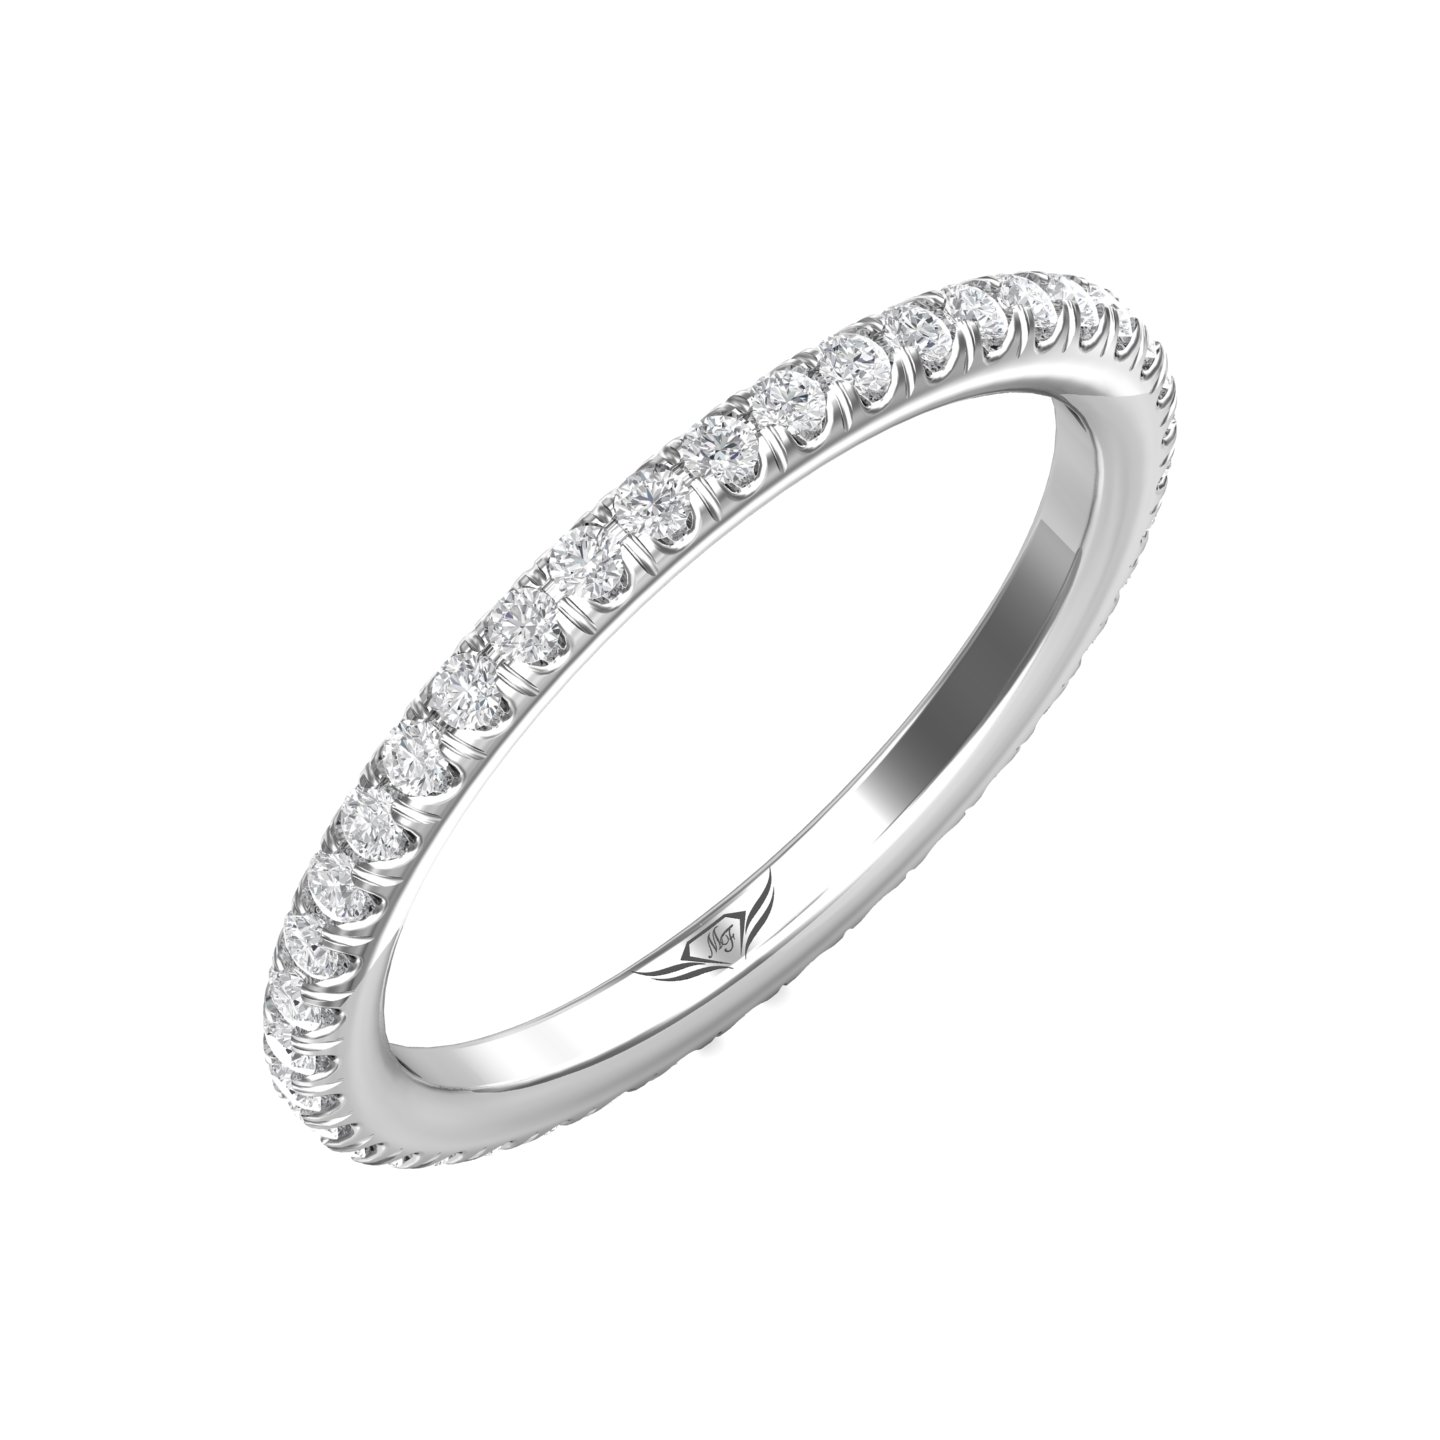 Rings - 14K White Gold FlyerFit Eternity Wedding Band - image #5